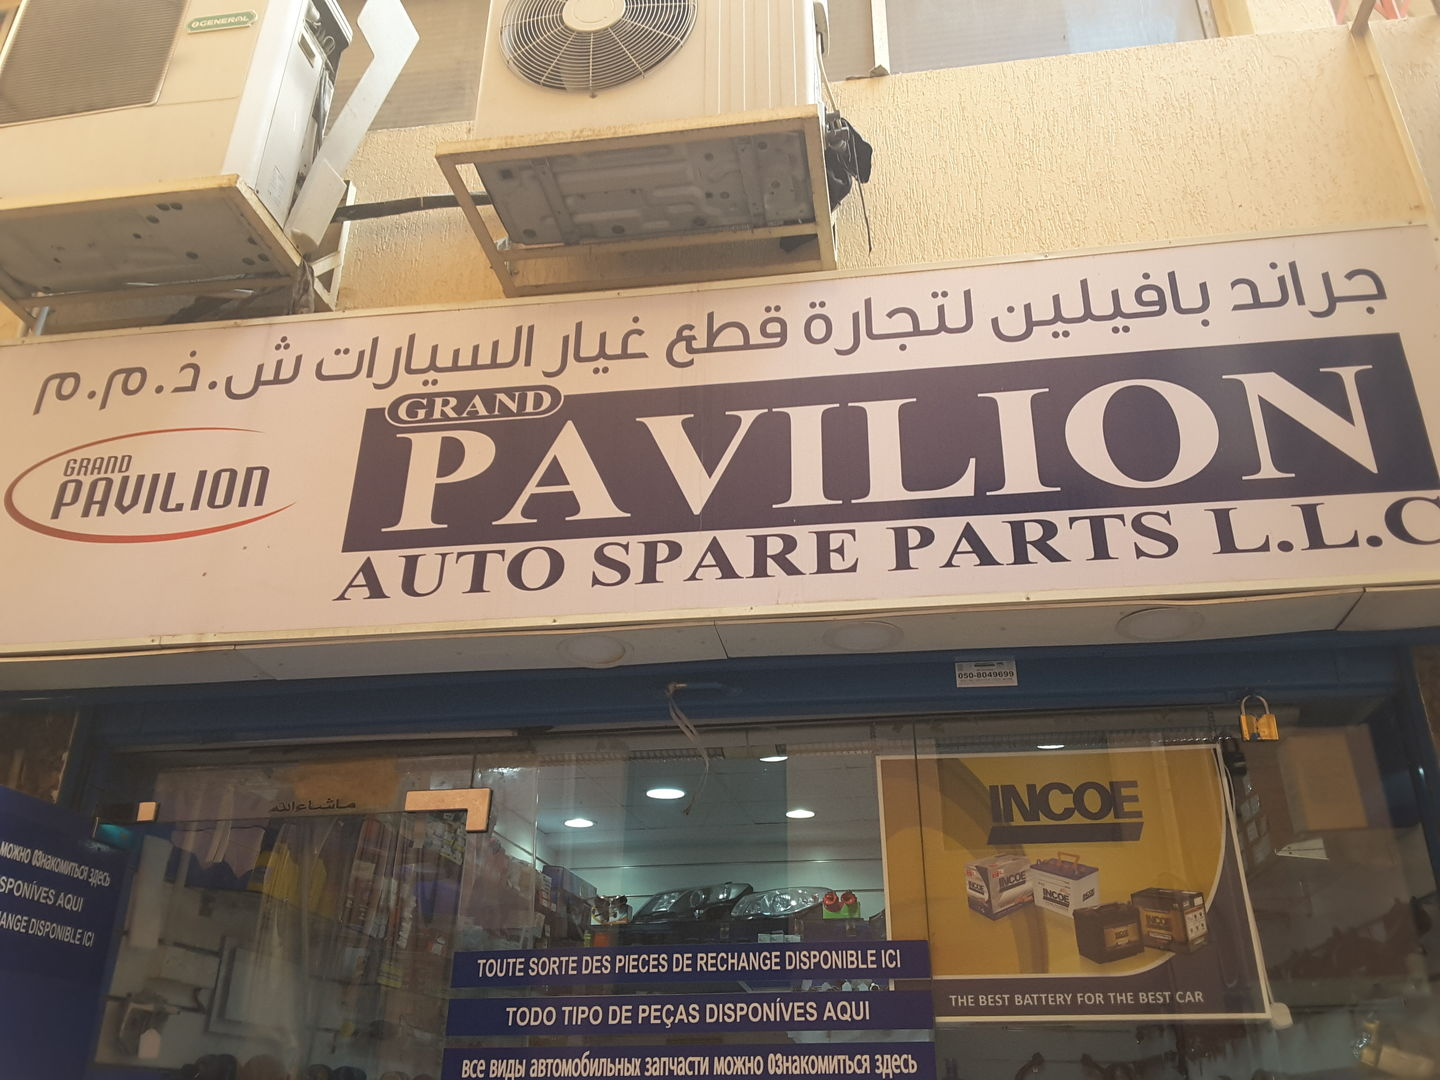 HiDubai-business-grand-pavilion-auto-spare-parts-b2b-services-distributors-wholesalers-naif-dubai-2